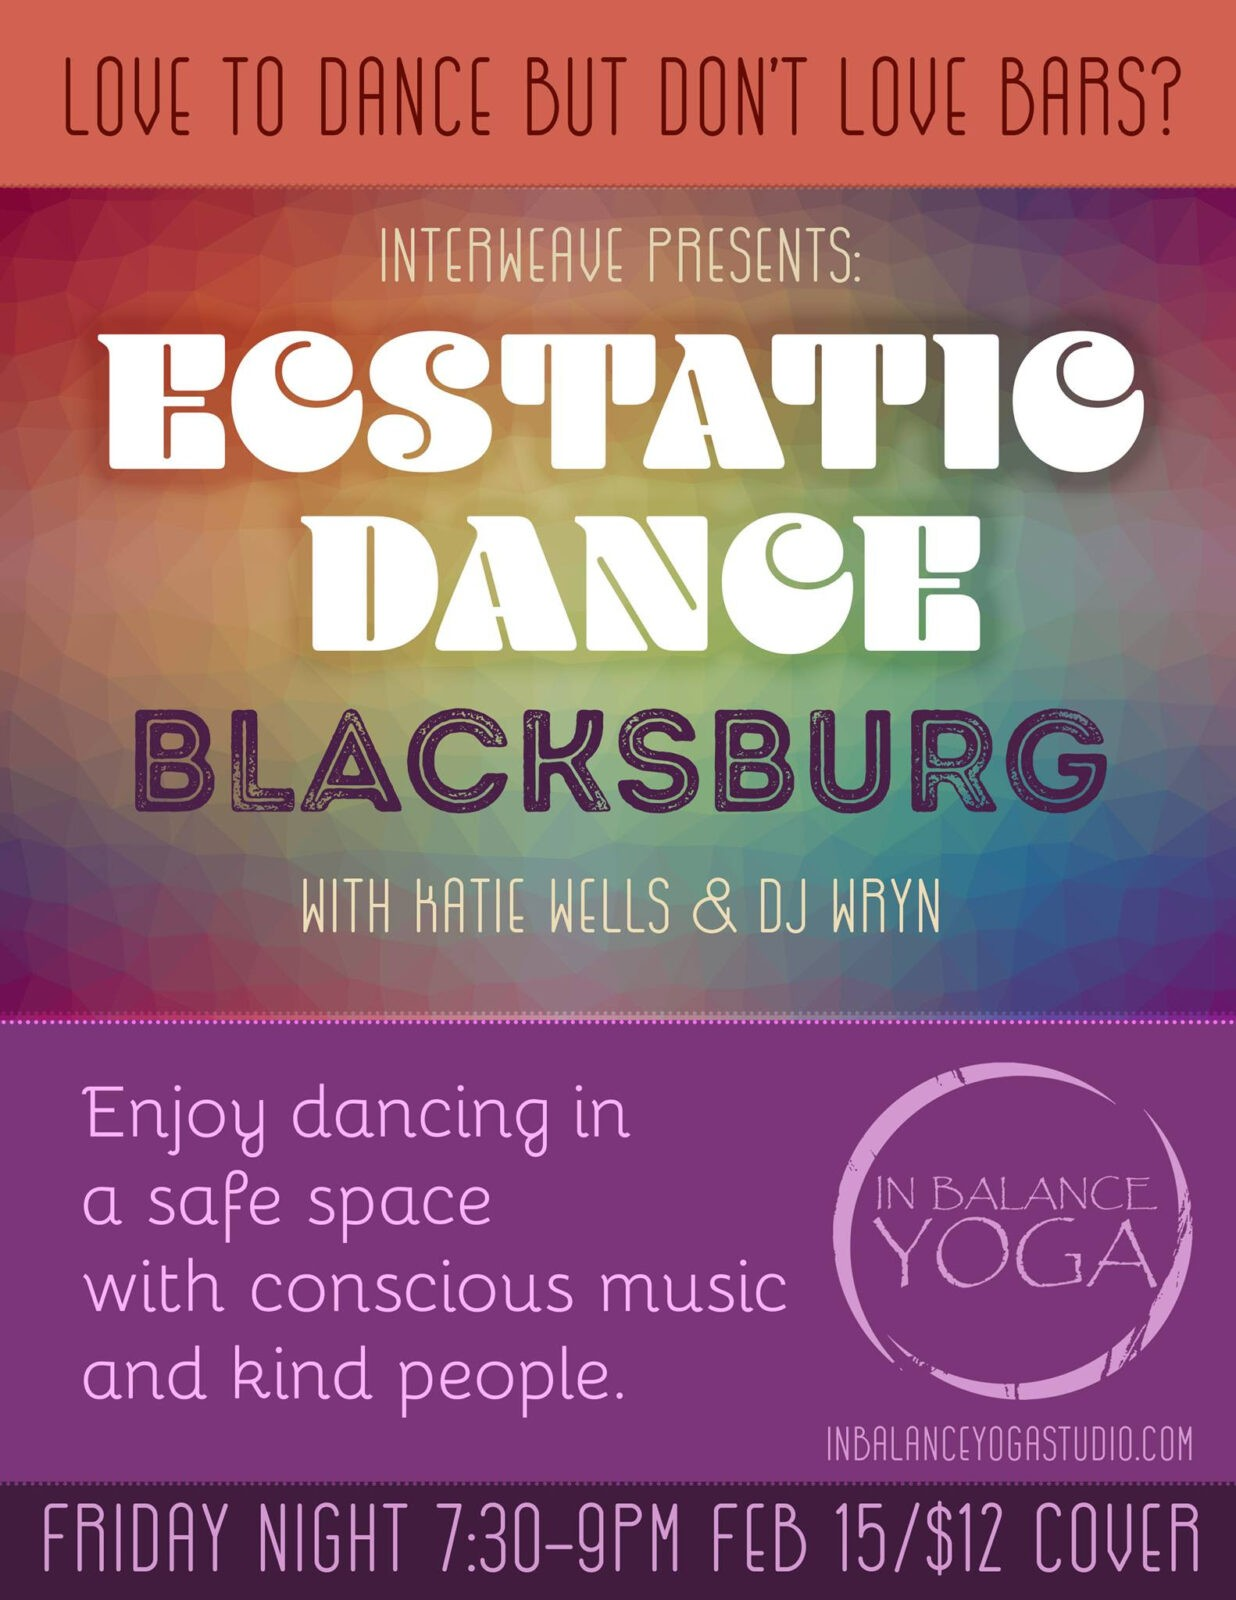 Ecstatic Dance @ In Balance Yoga, Blacksburg